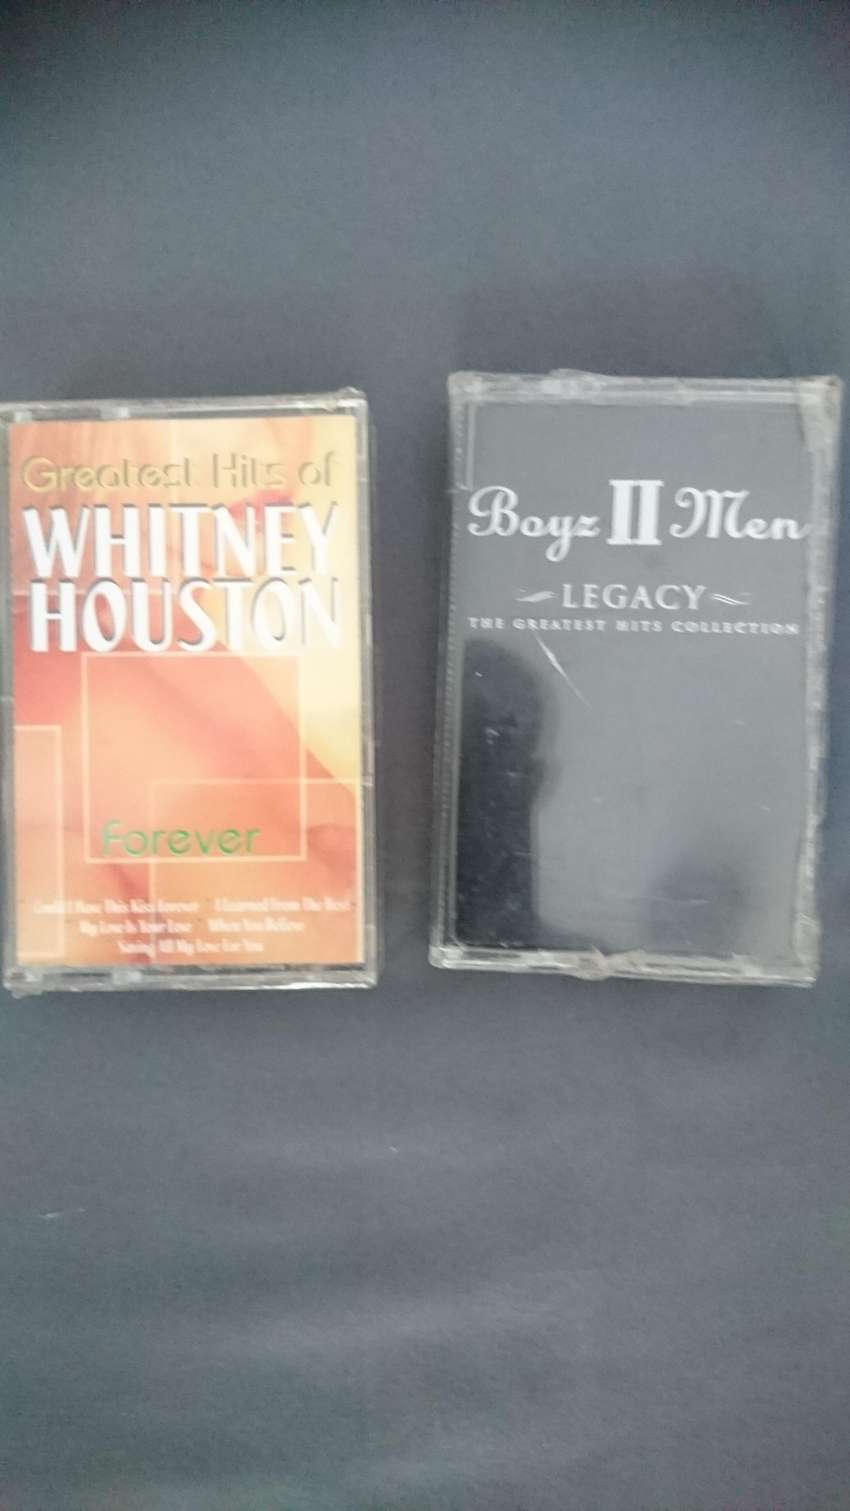 boys II men and Whitney Houston tape cassette for collectors